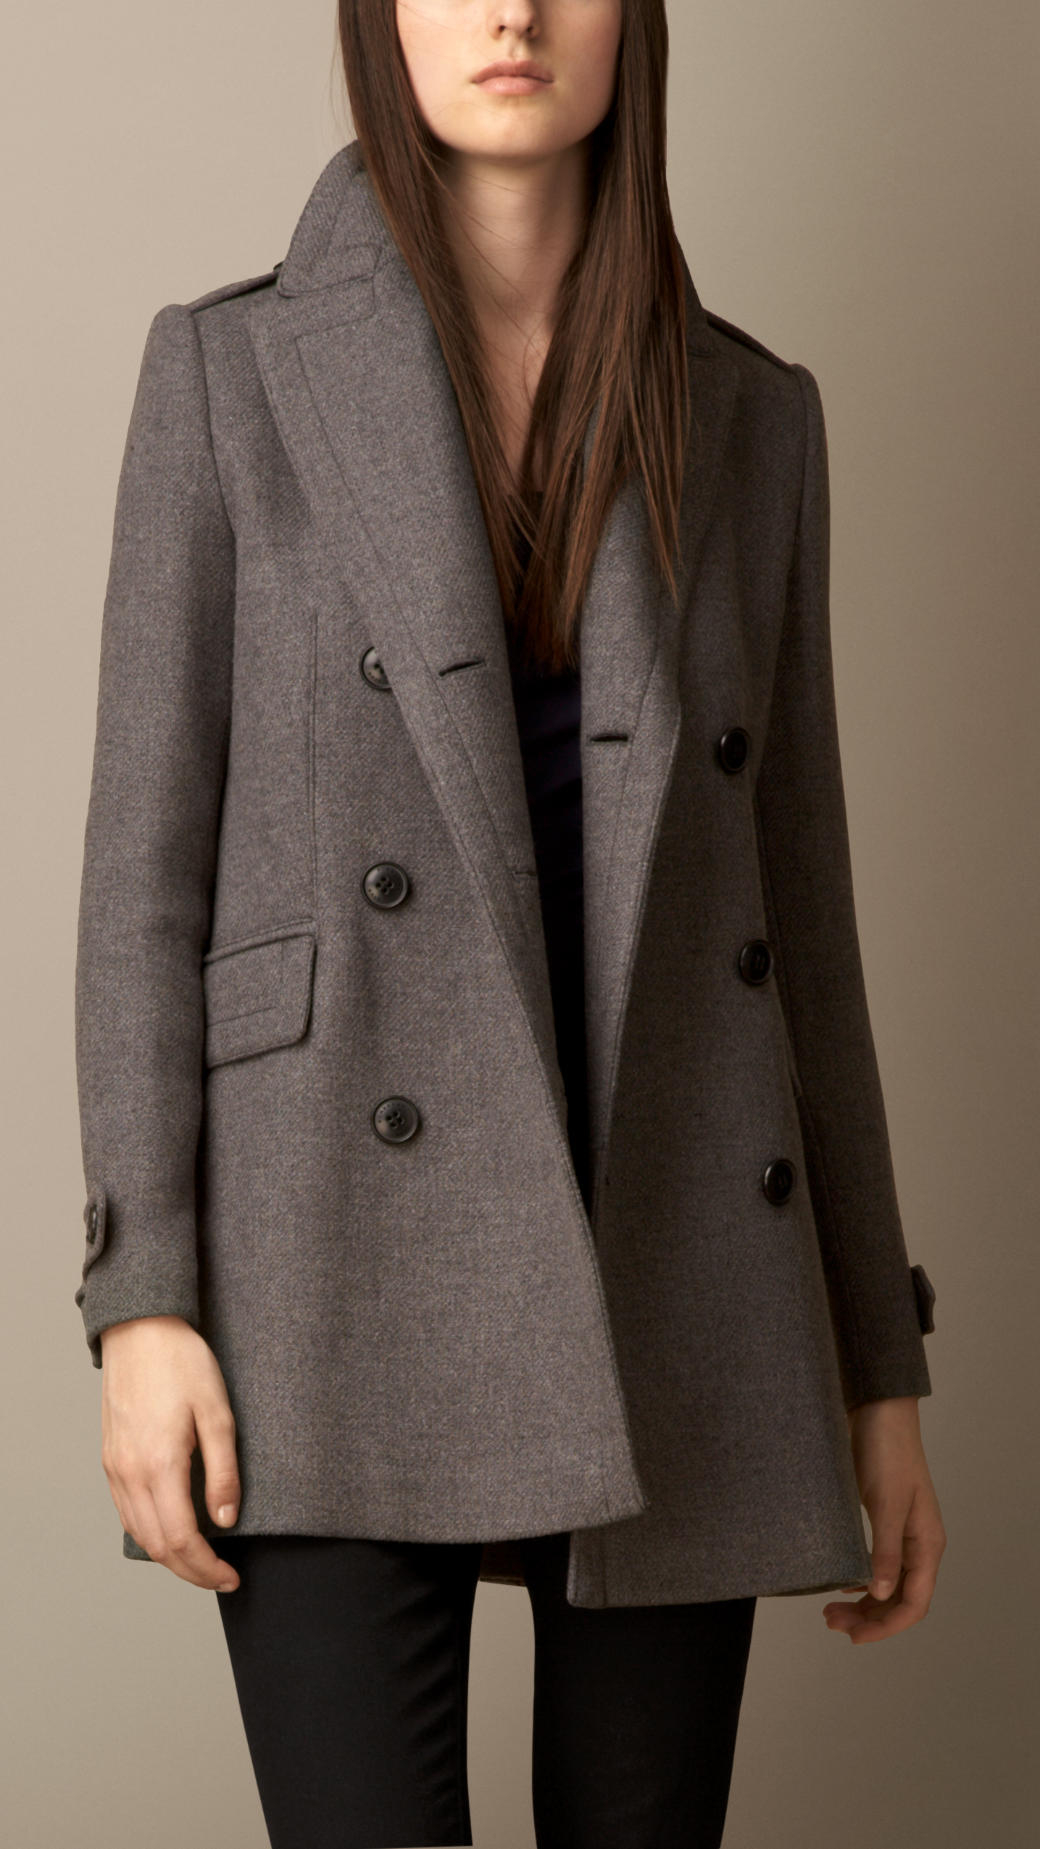 Burberry Oversize Pea Coat With Leather Undercollar in Gray | Lyst